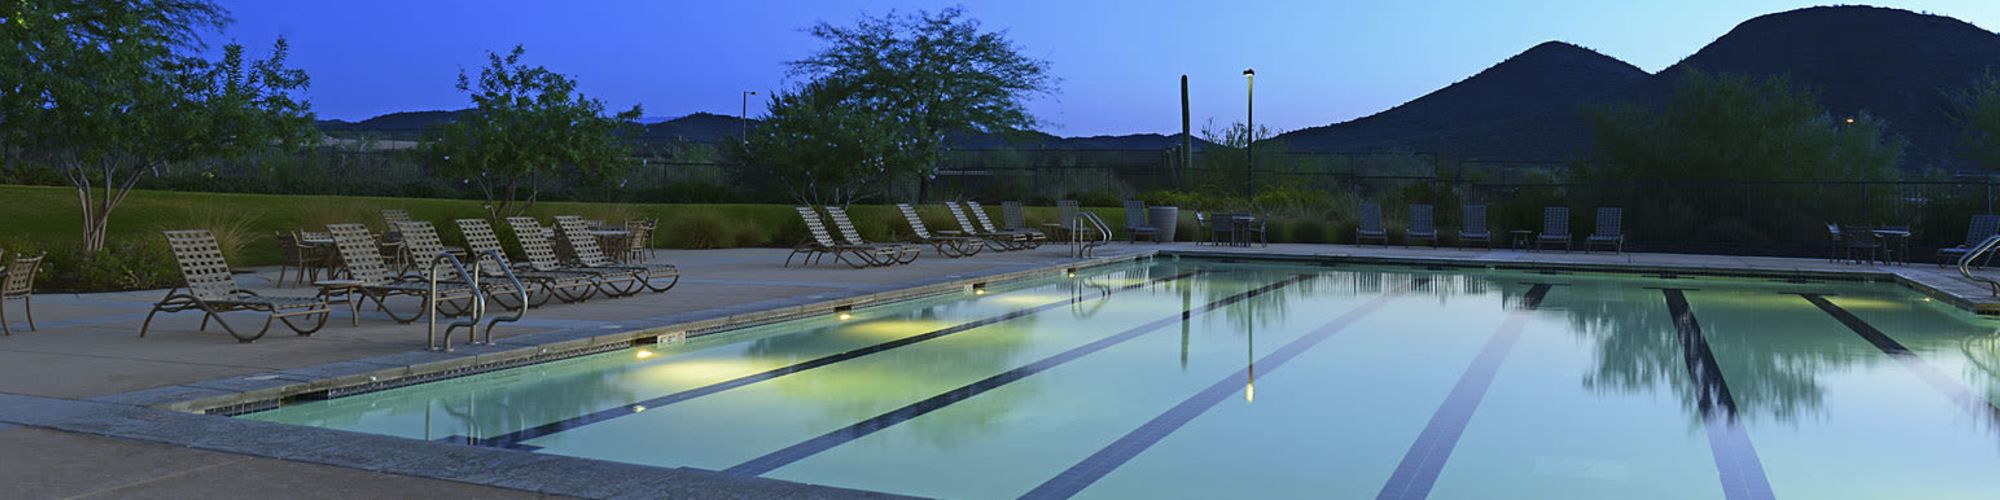 Amenities at Vistancia in Peoria, Arizona